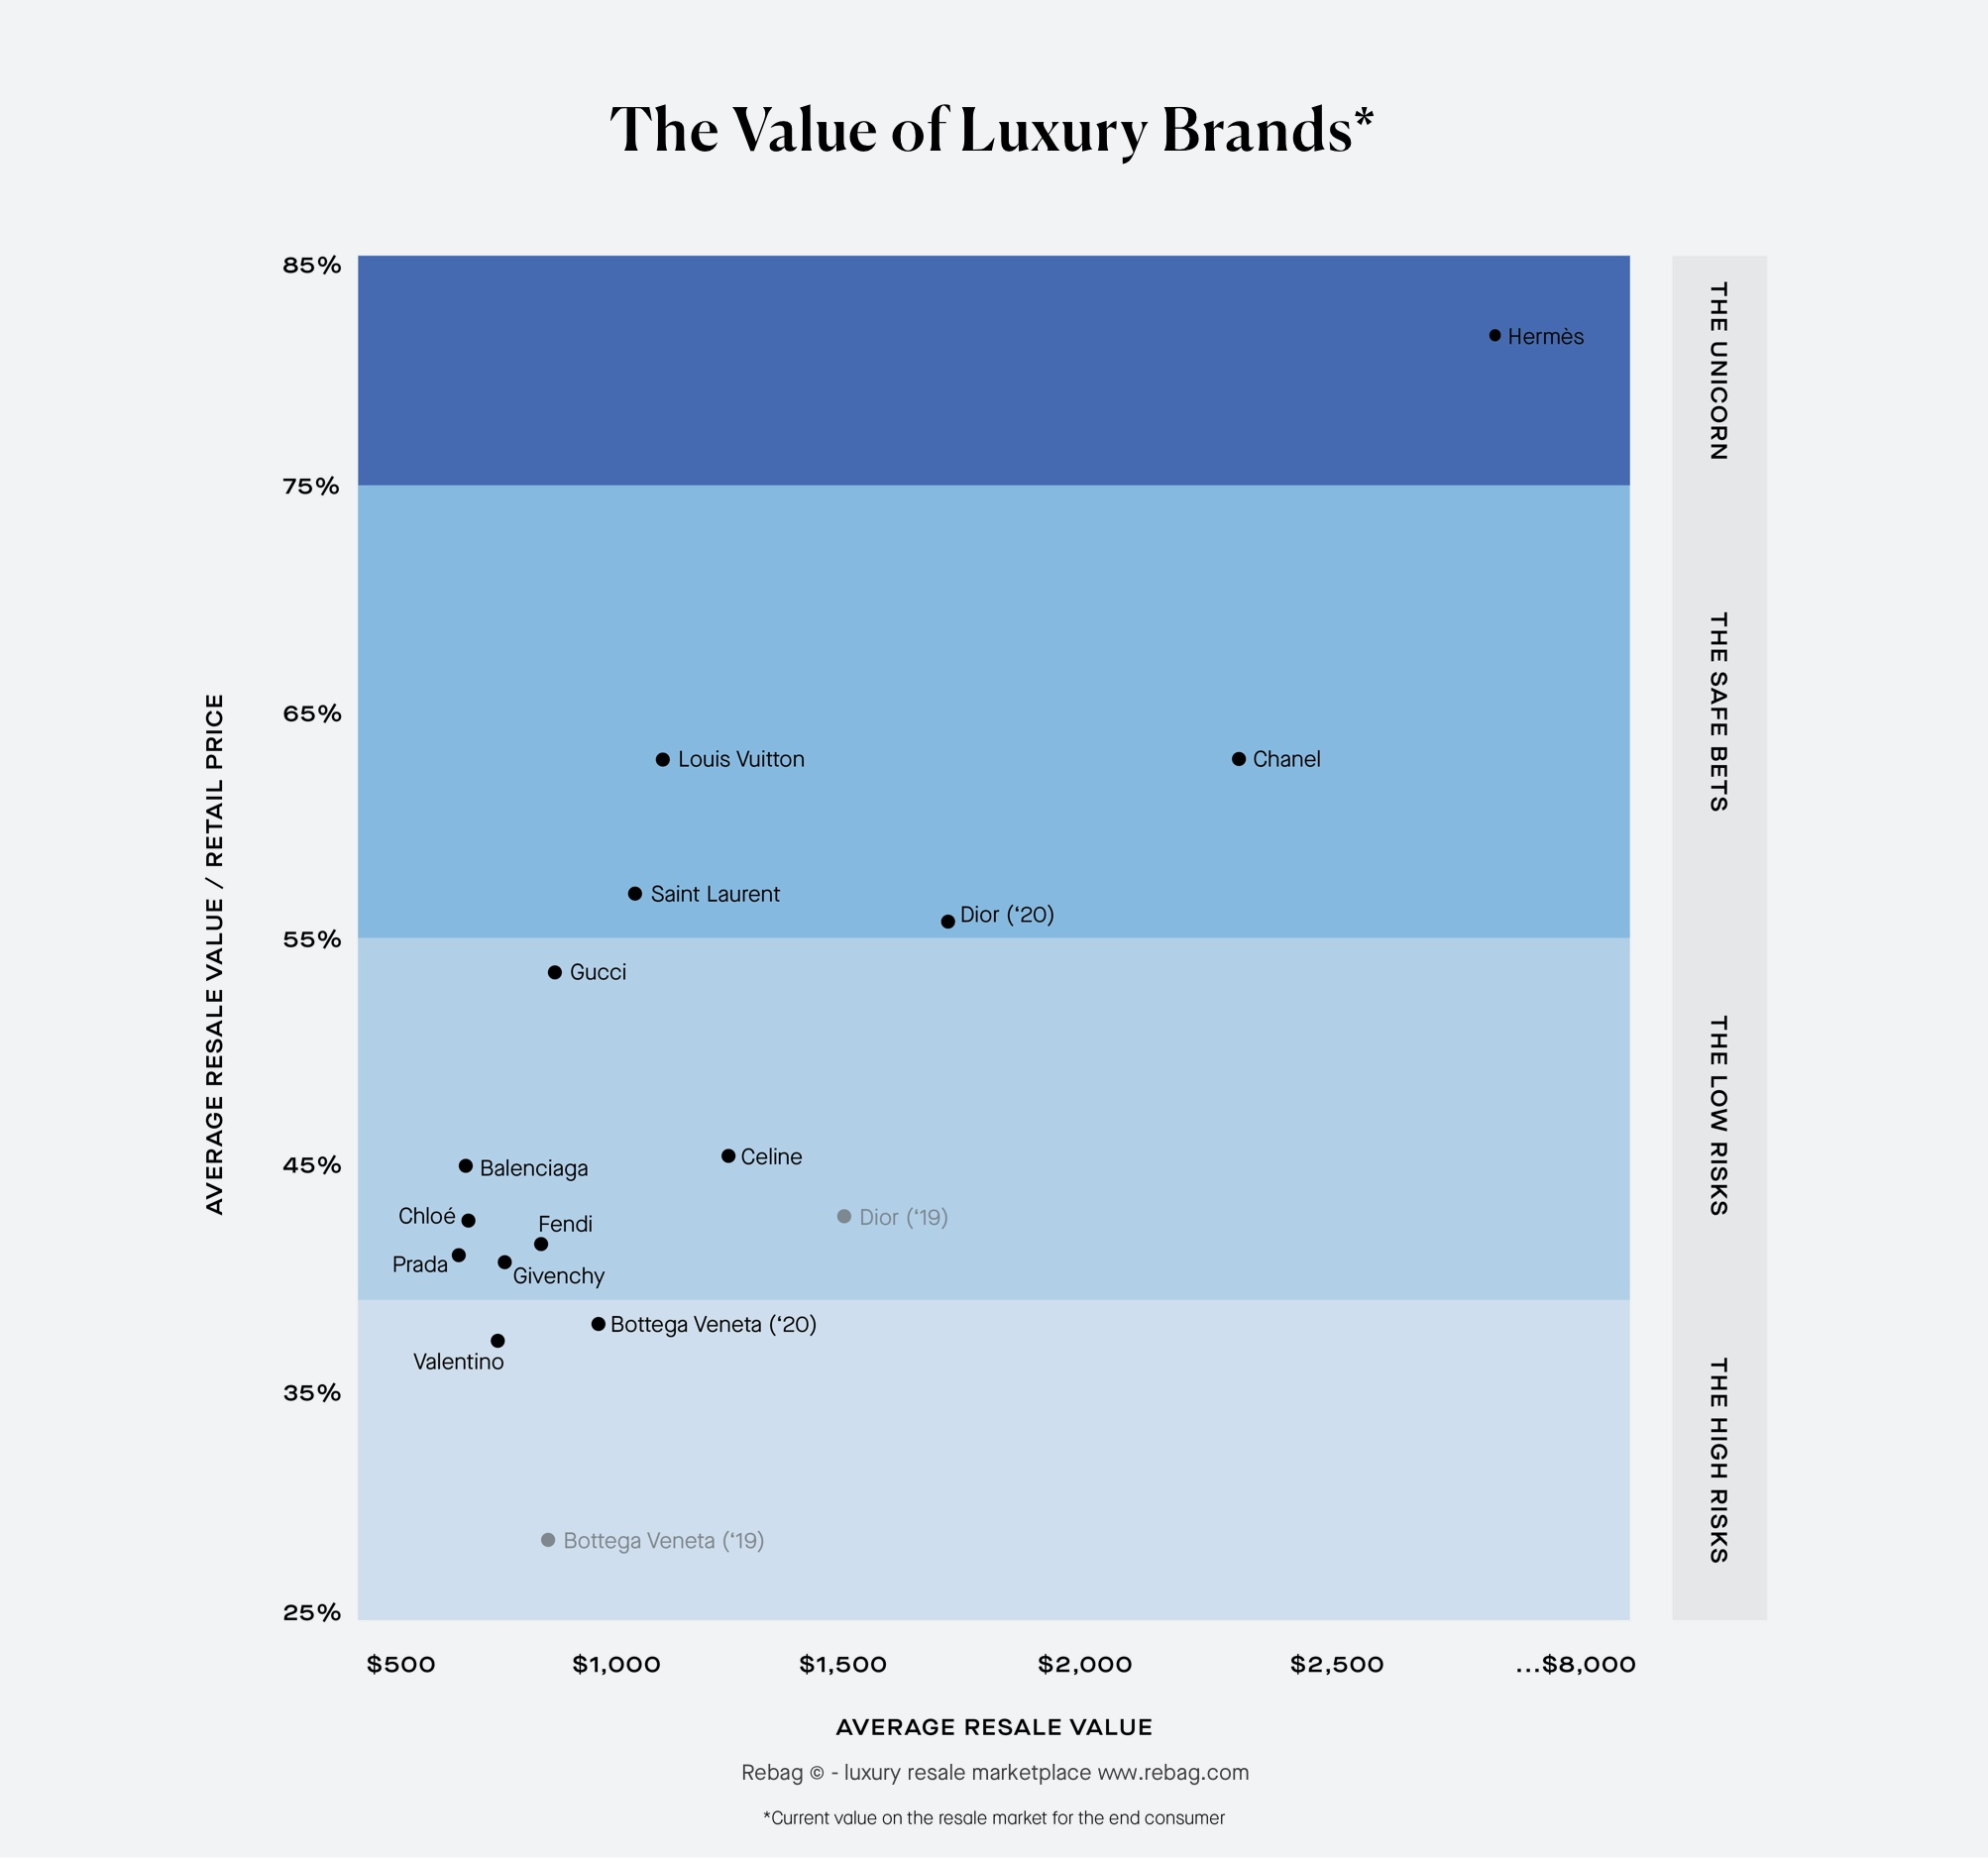 The value of luxury brand - average resale value